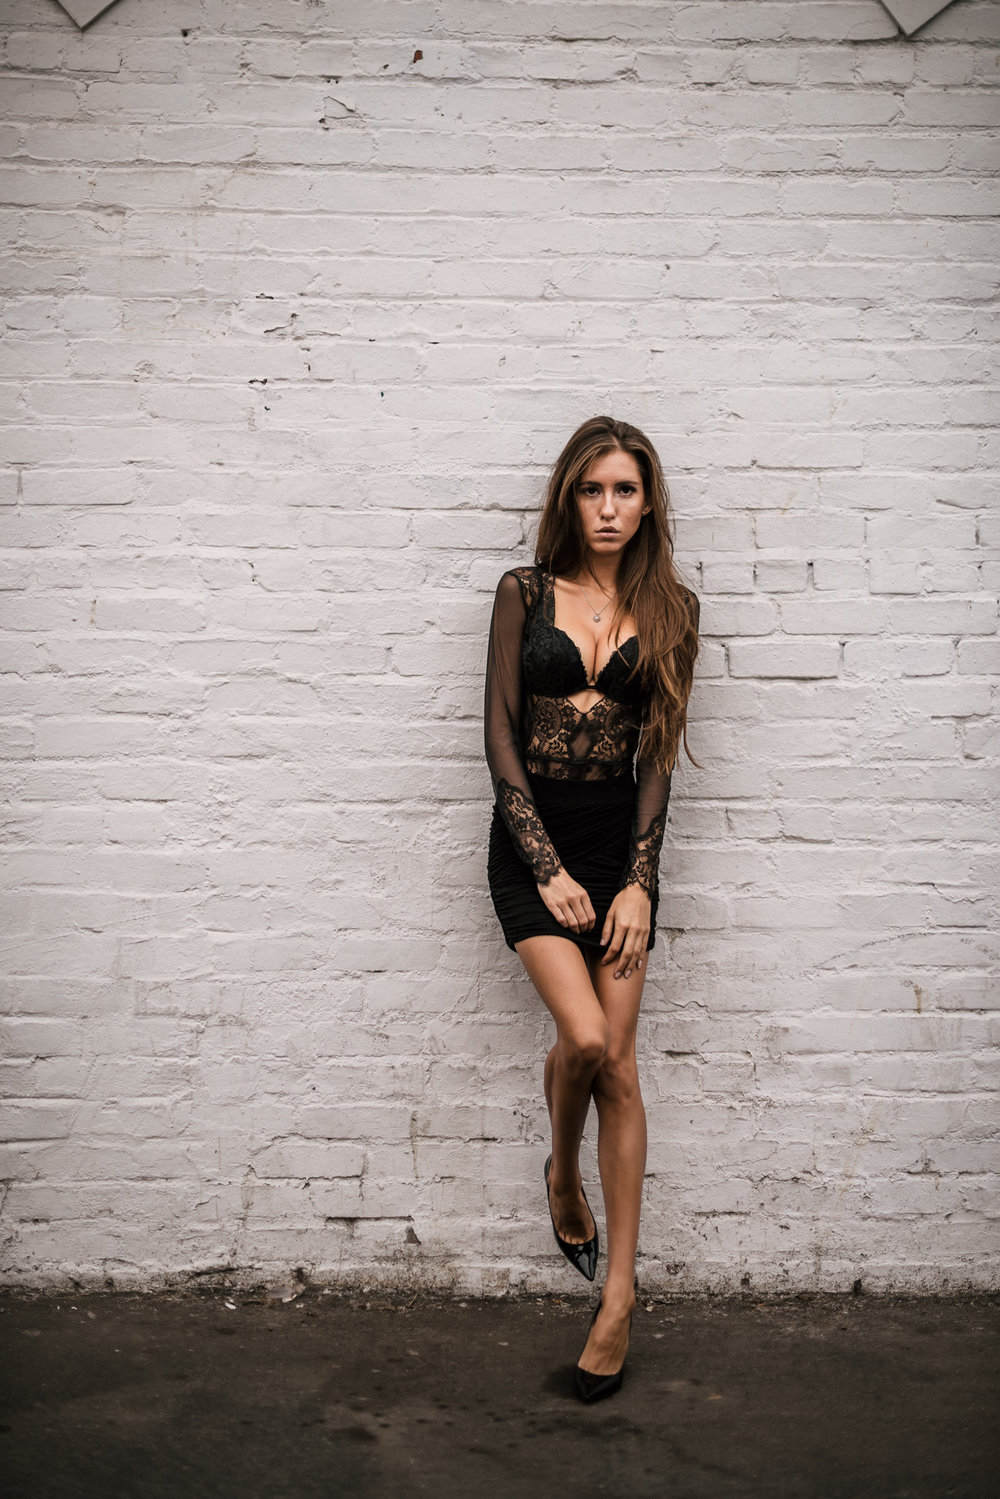 woman gazes into camera leaned against white wall standing on one leg at The Hungarion Brunette Lingerie as outerwear fashion photoshoot in Venice Beach California